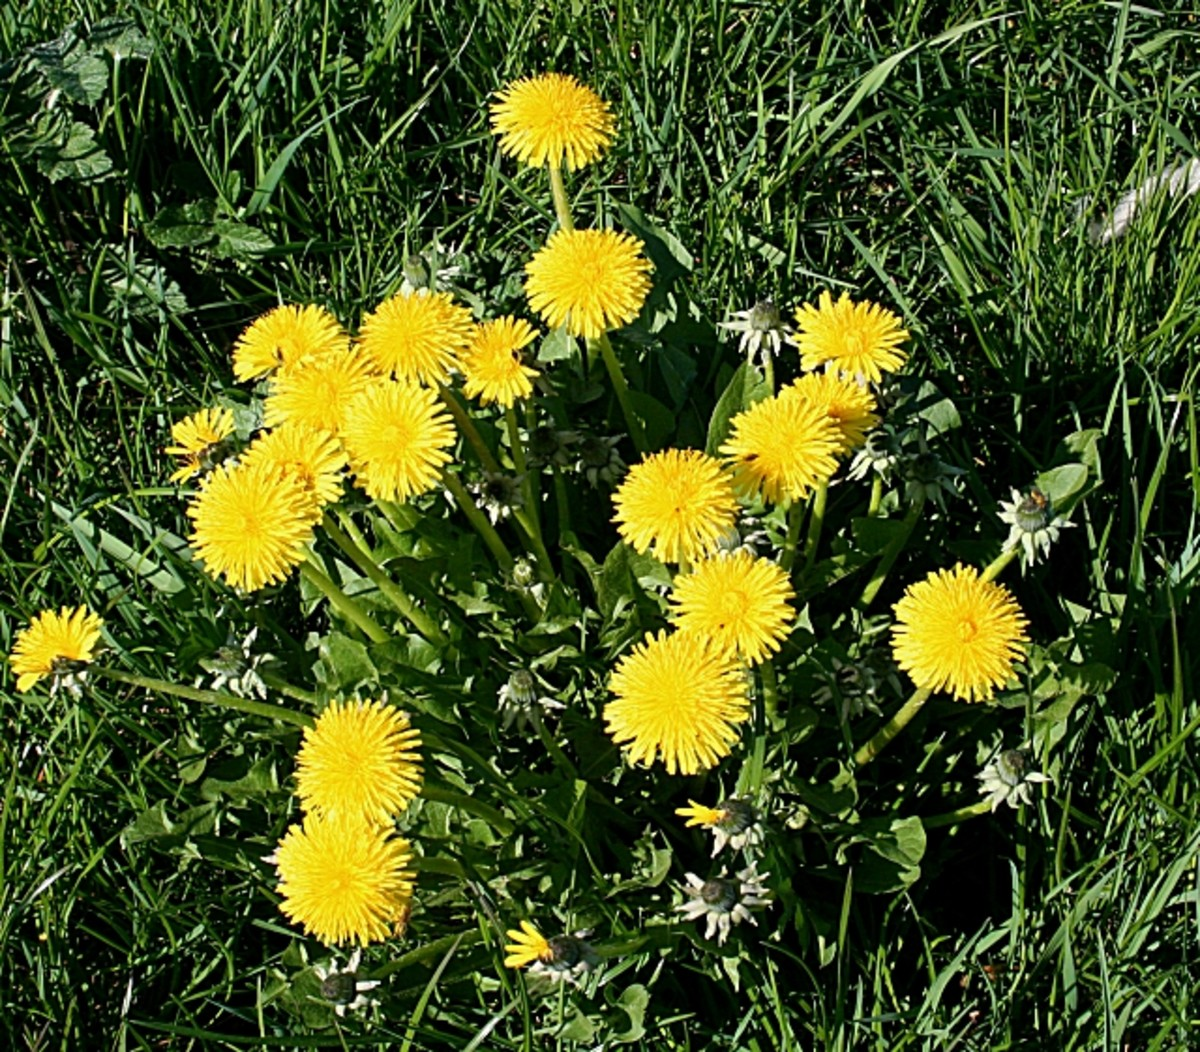 A cluster of dandelions—one of the most beneficial plants you can take and include in your diet.